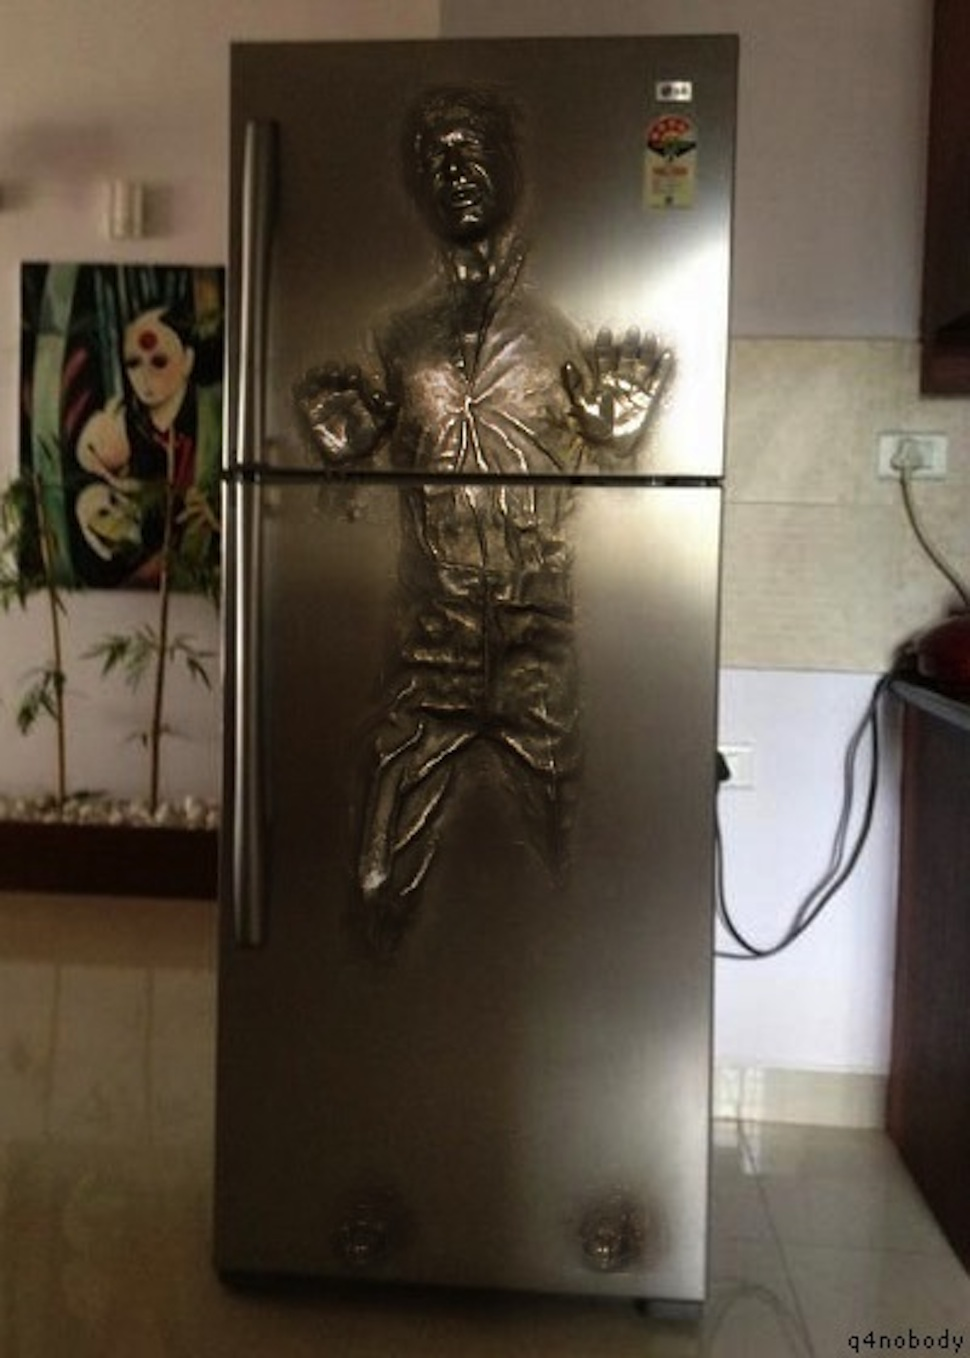 Exceptionnel Hansolocarbonite89483123. Yes, This Refrigerator Of Han Solo Frozen In  Carbonite Is Fake ...